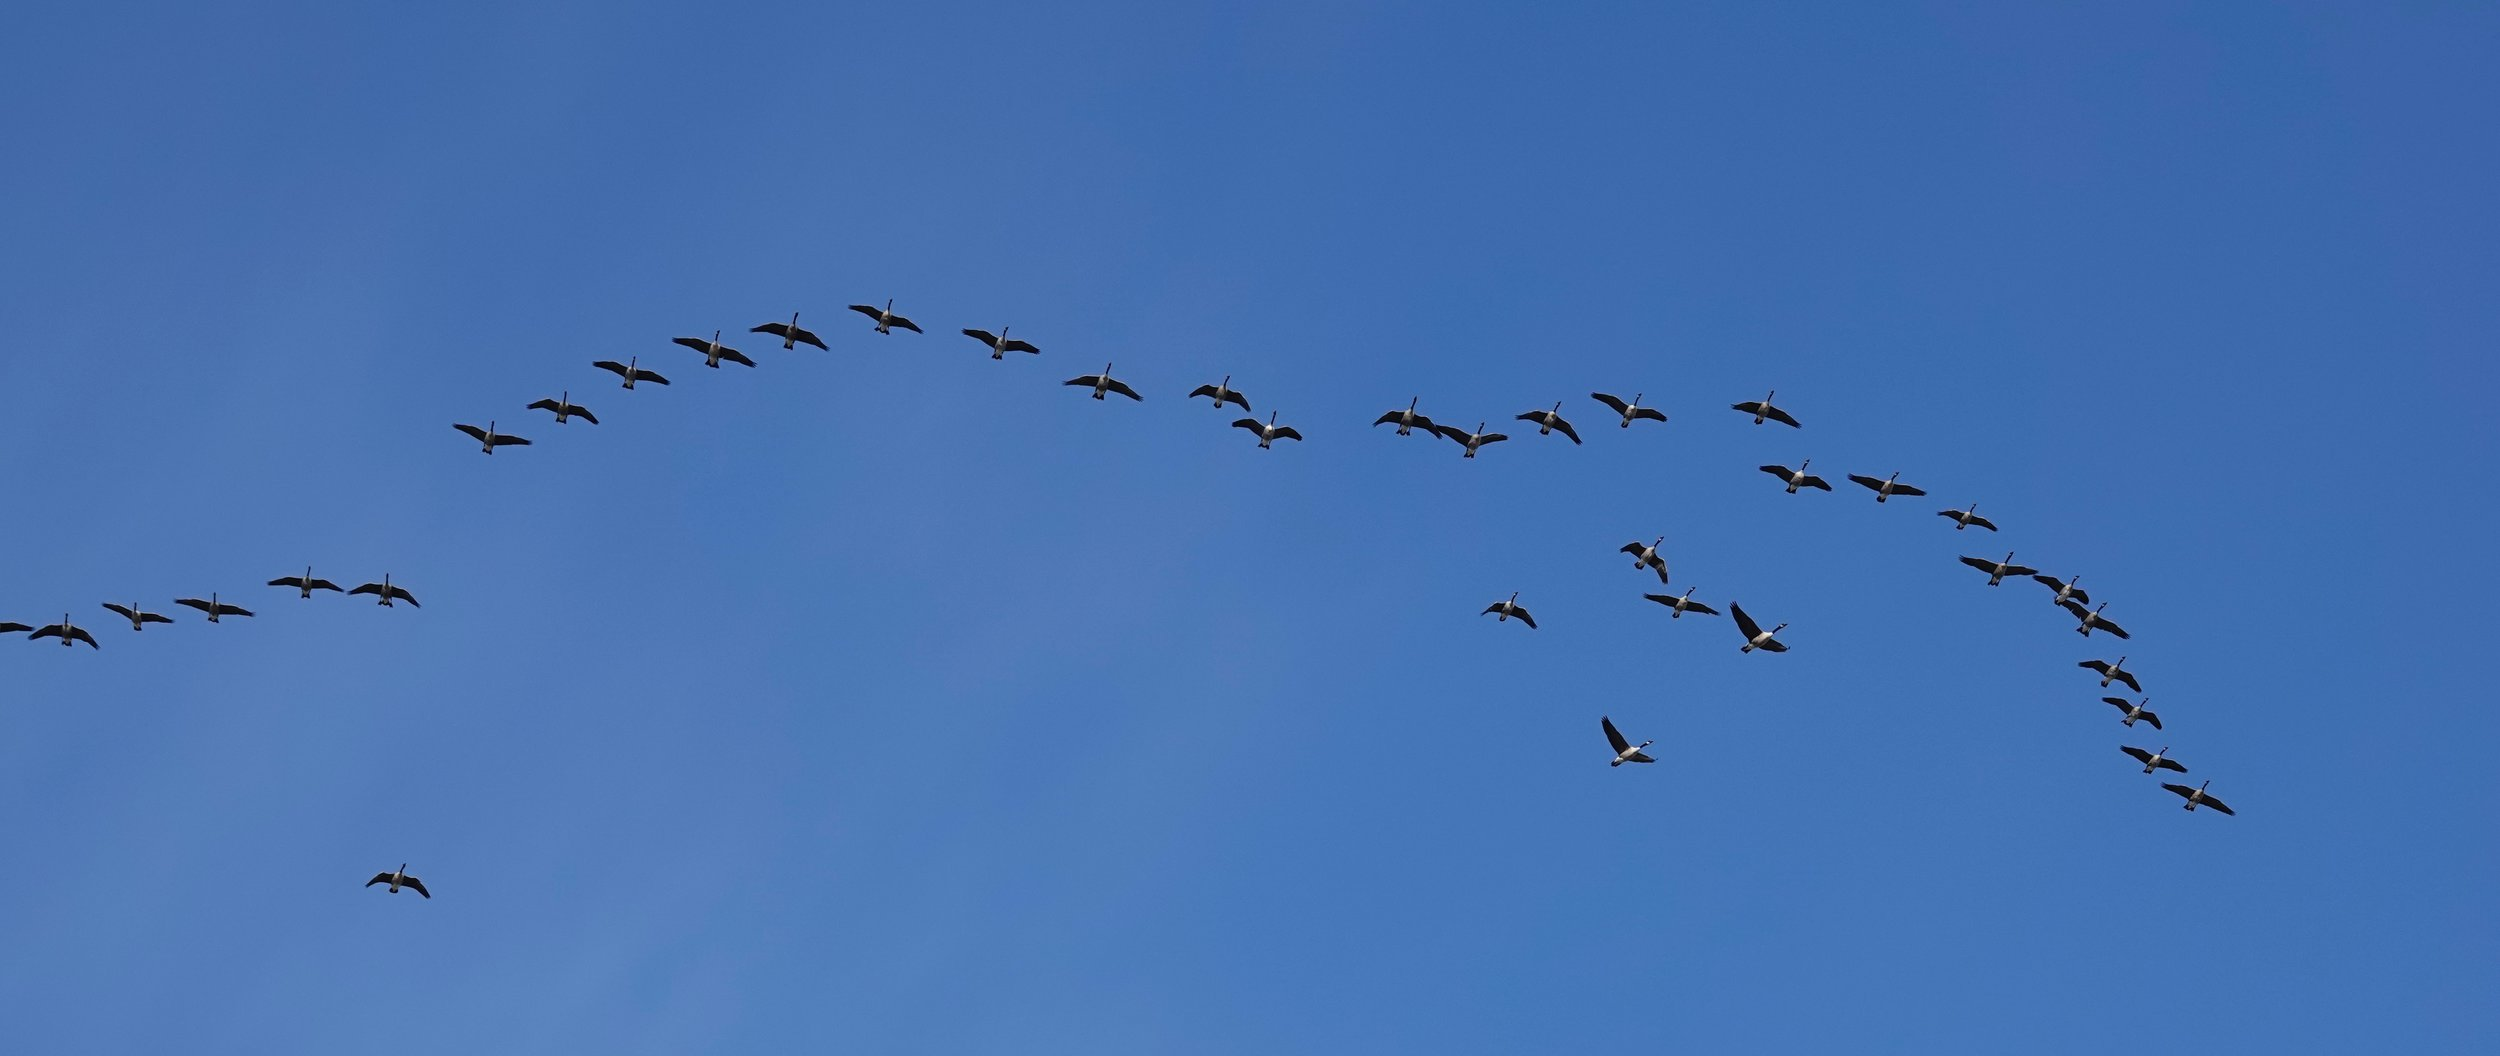 Canada geese sometimes experiment with letters other than V in their flight formations.